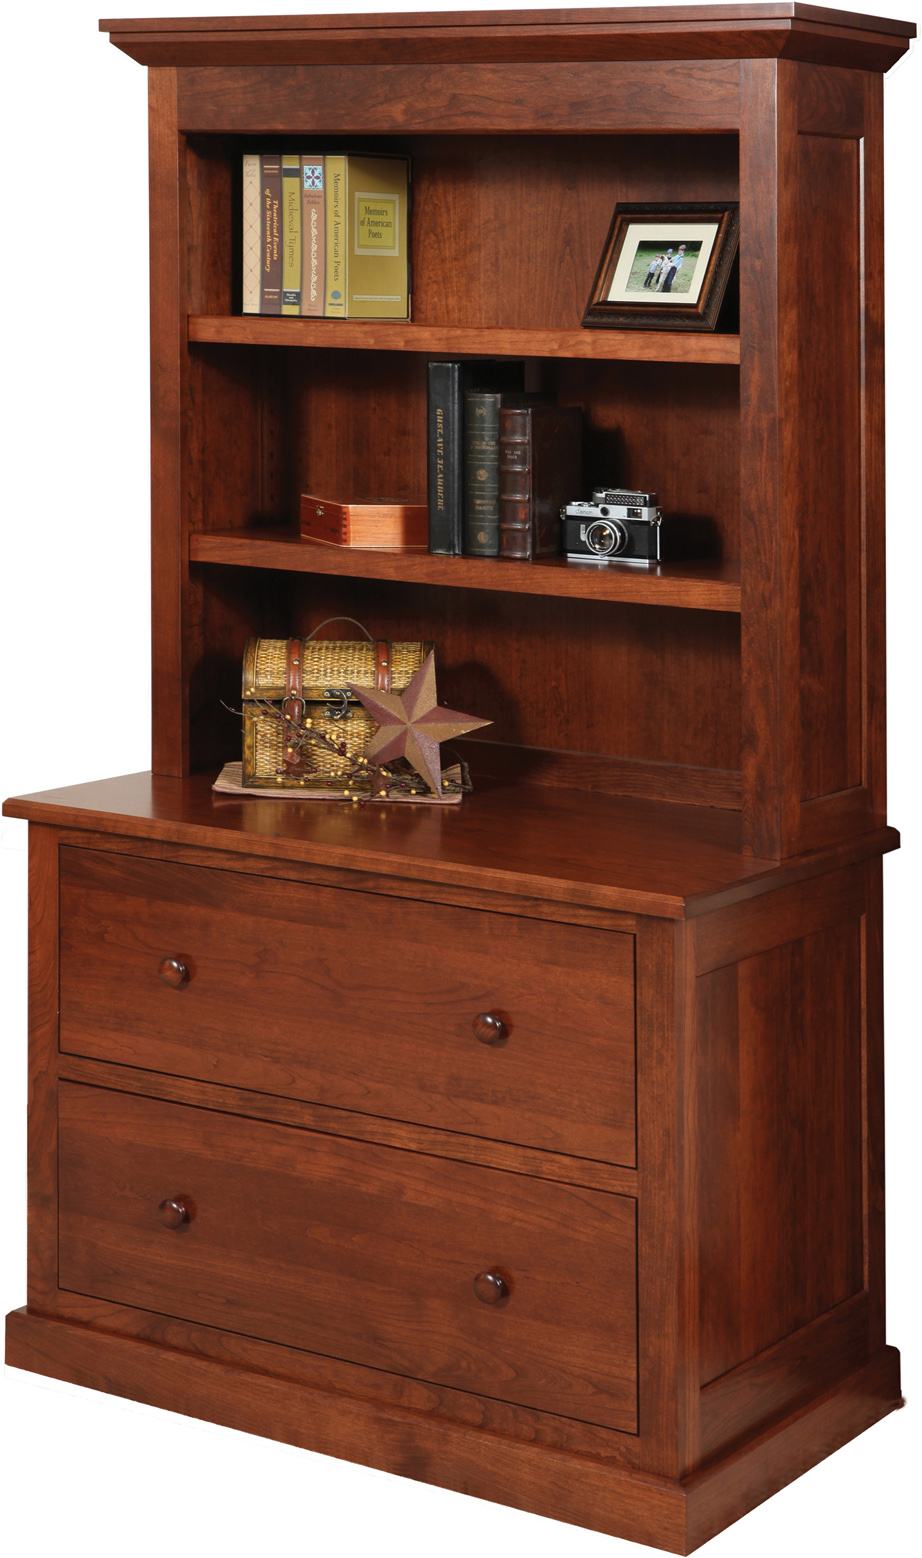 Homestead Lateral File Cabinet With Hutch Amish